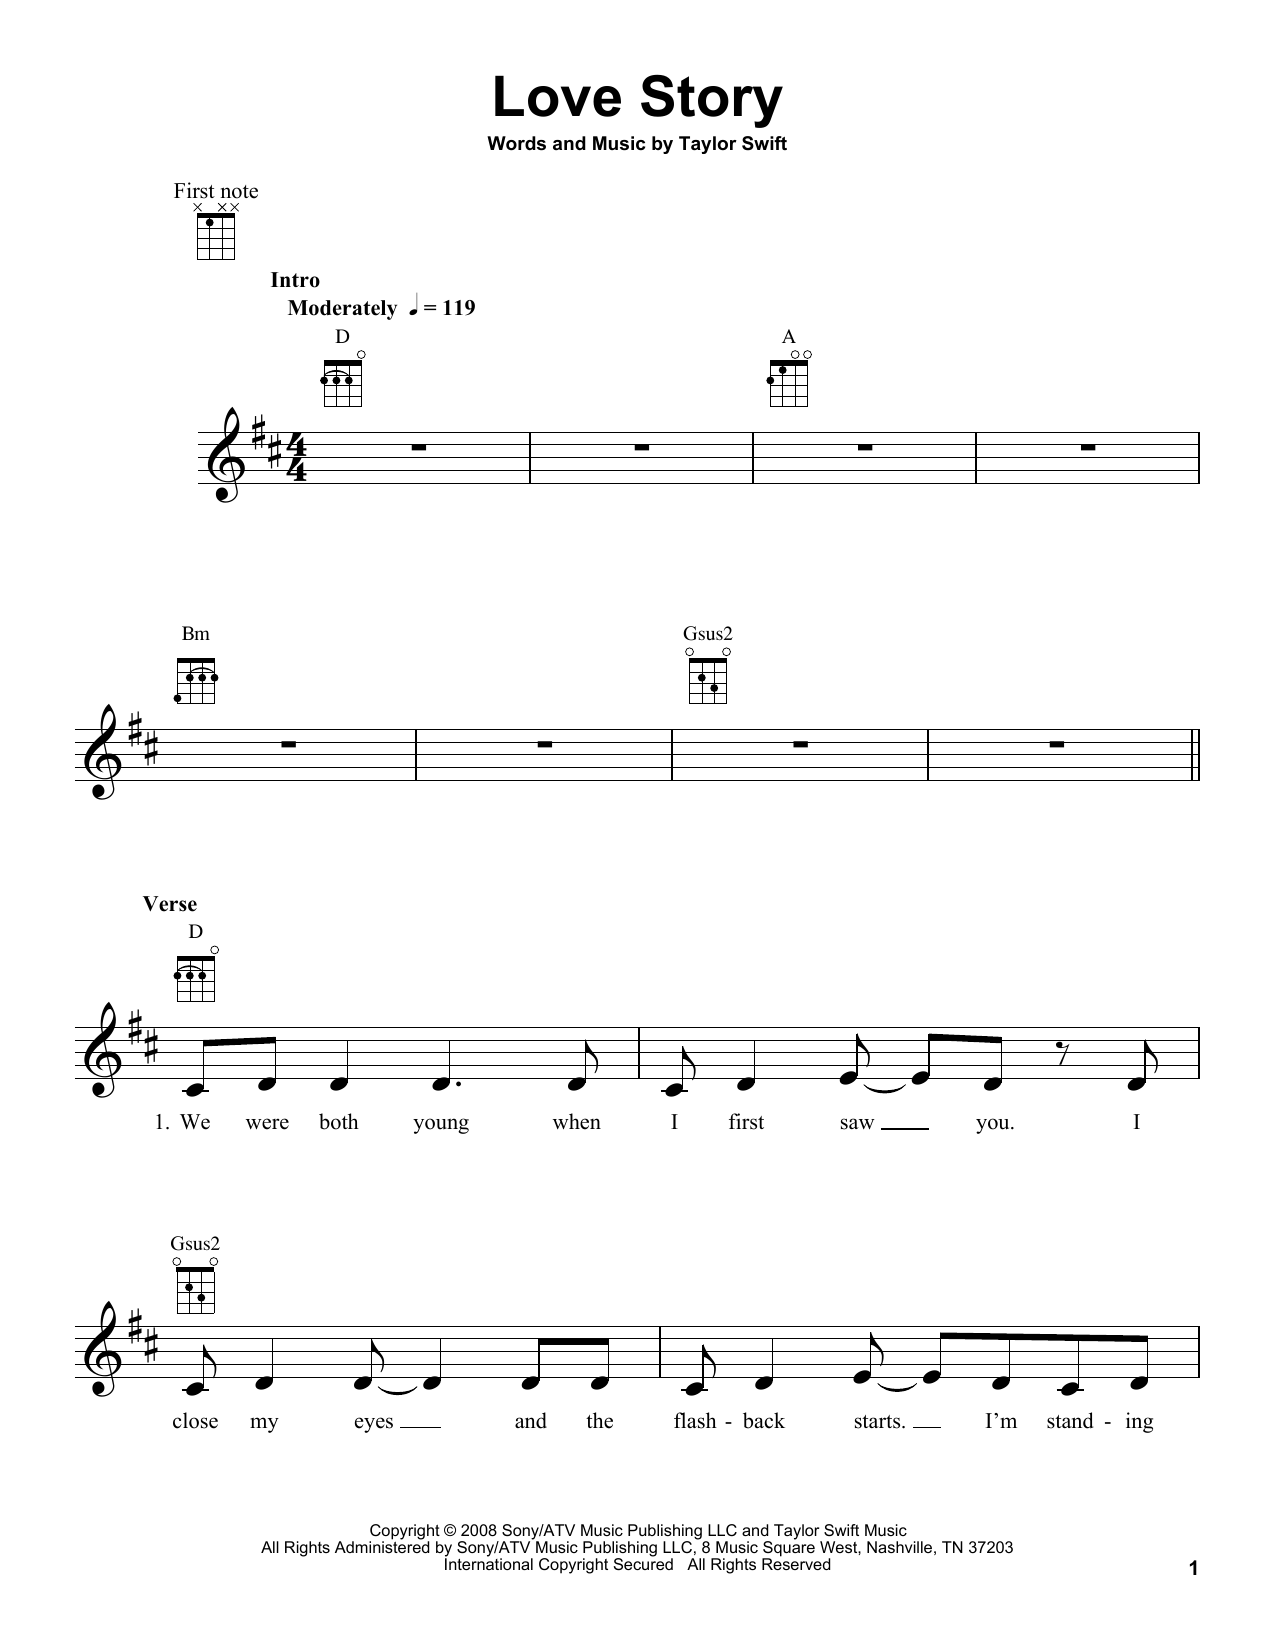 Taylor swift guitar chords love story